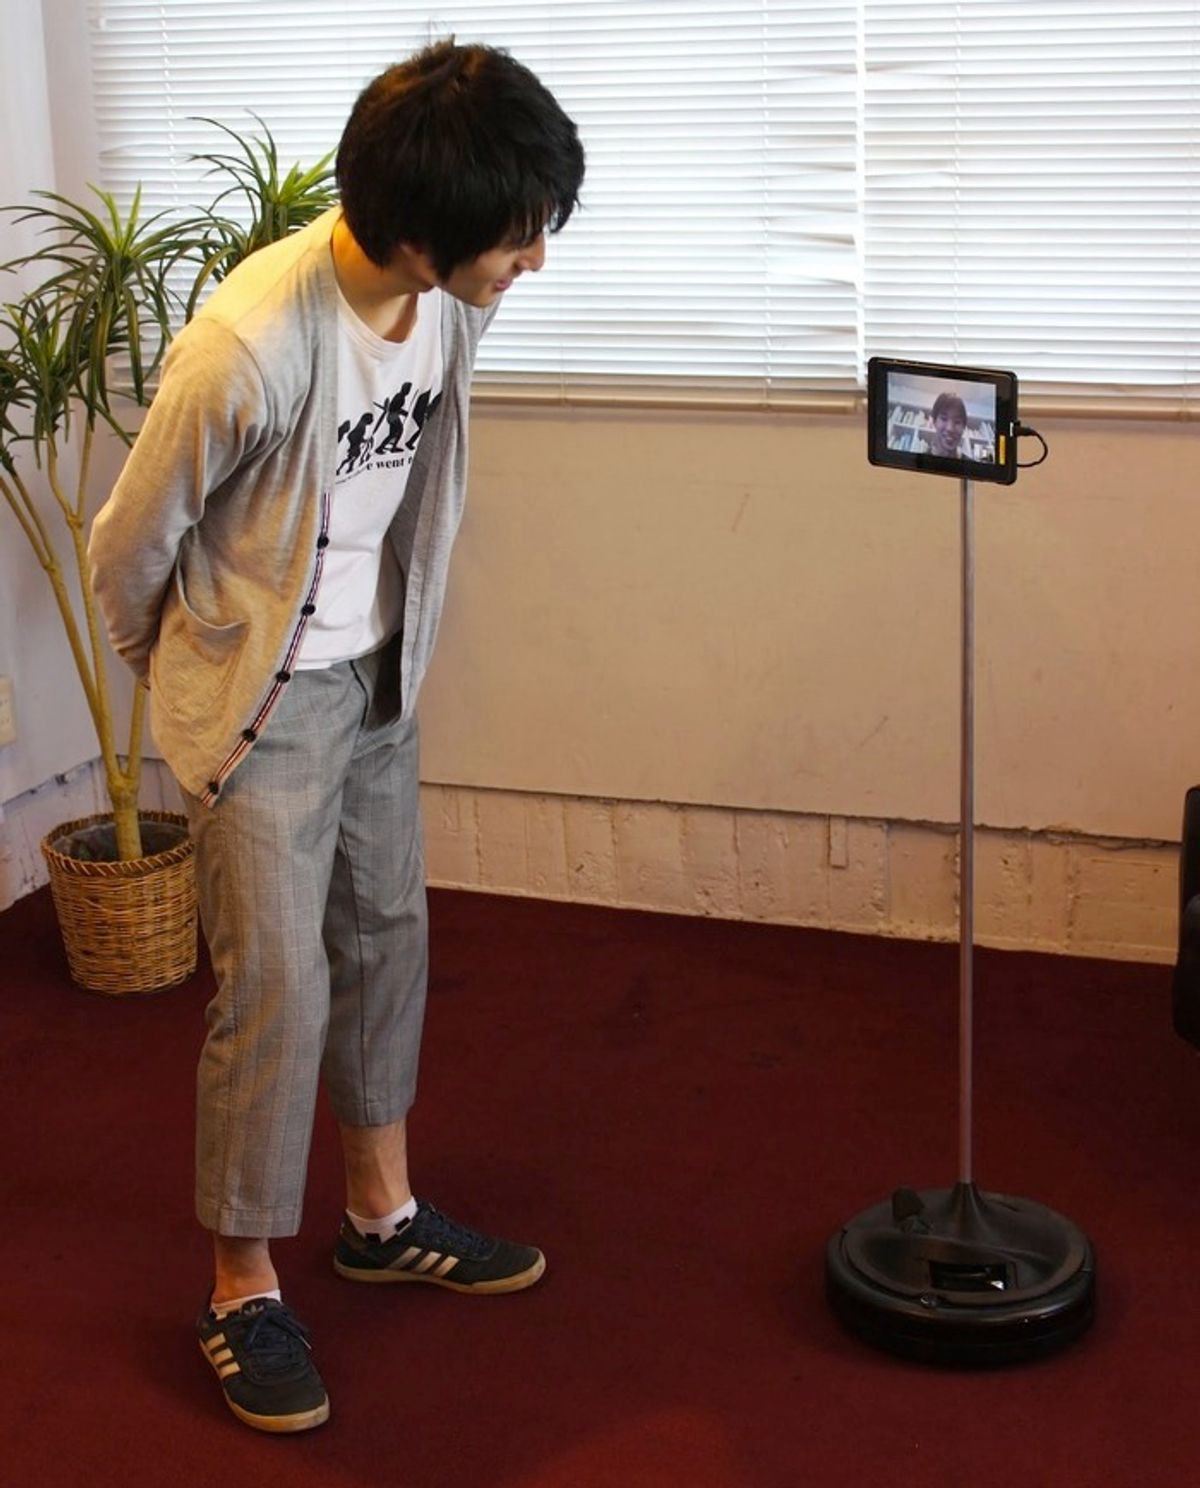 Telemba Turns Your Old Roomba and Tablet Into a Telepresence Robot